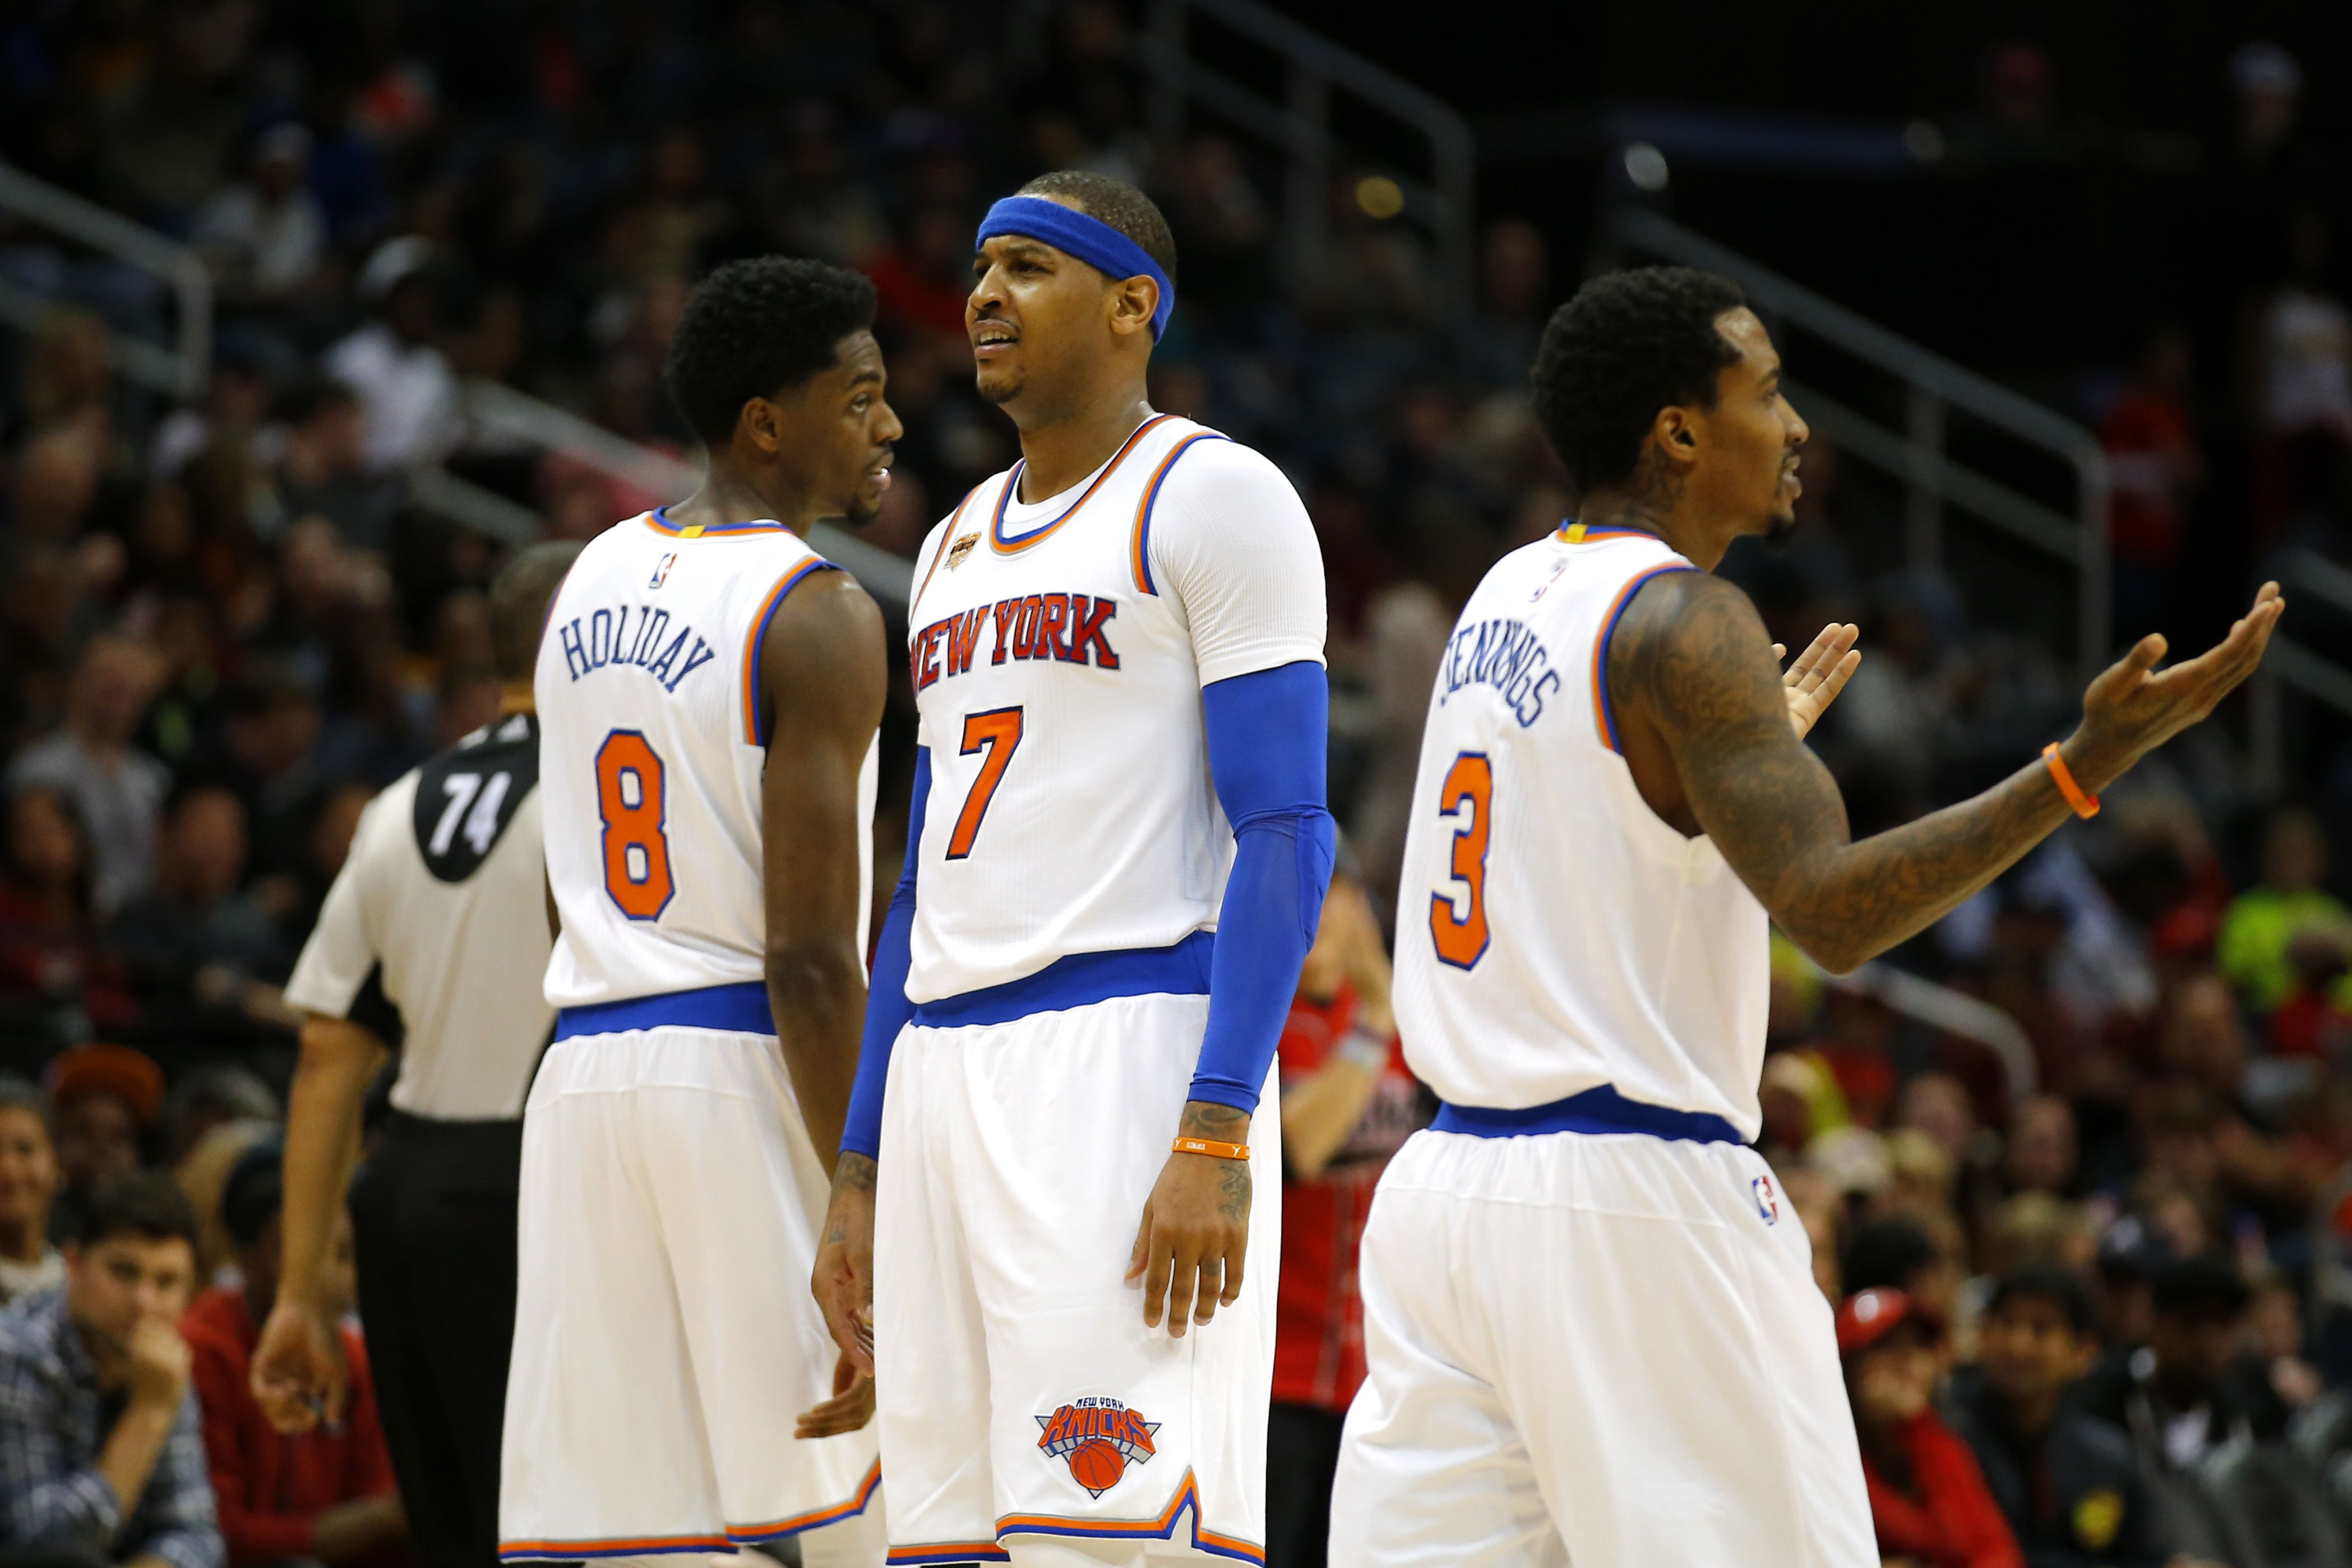 Knicks sent scouts to Milwaukee to evaluate Celtics players